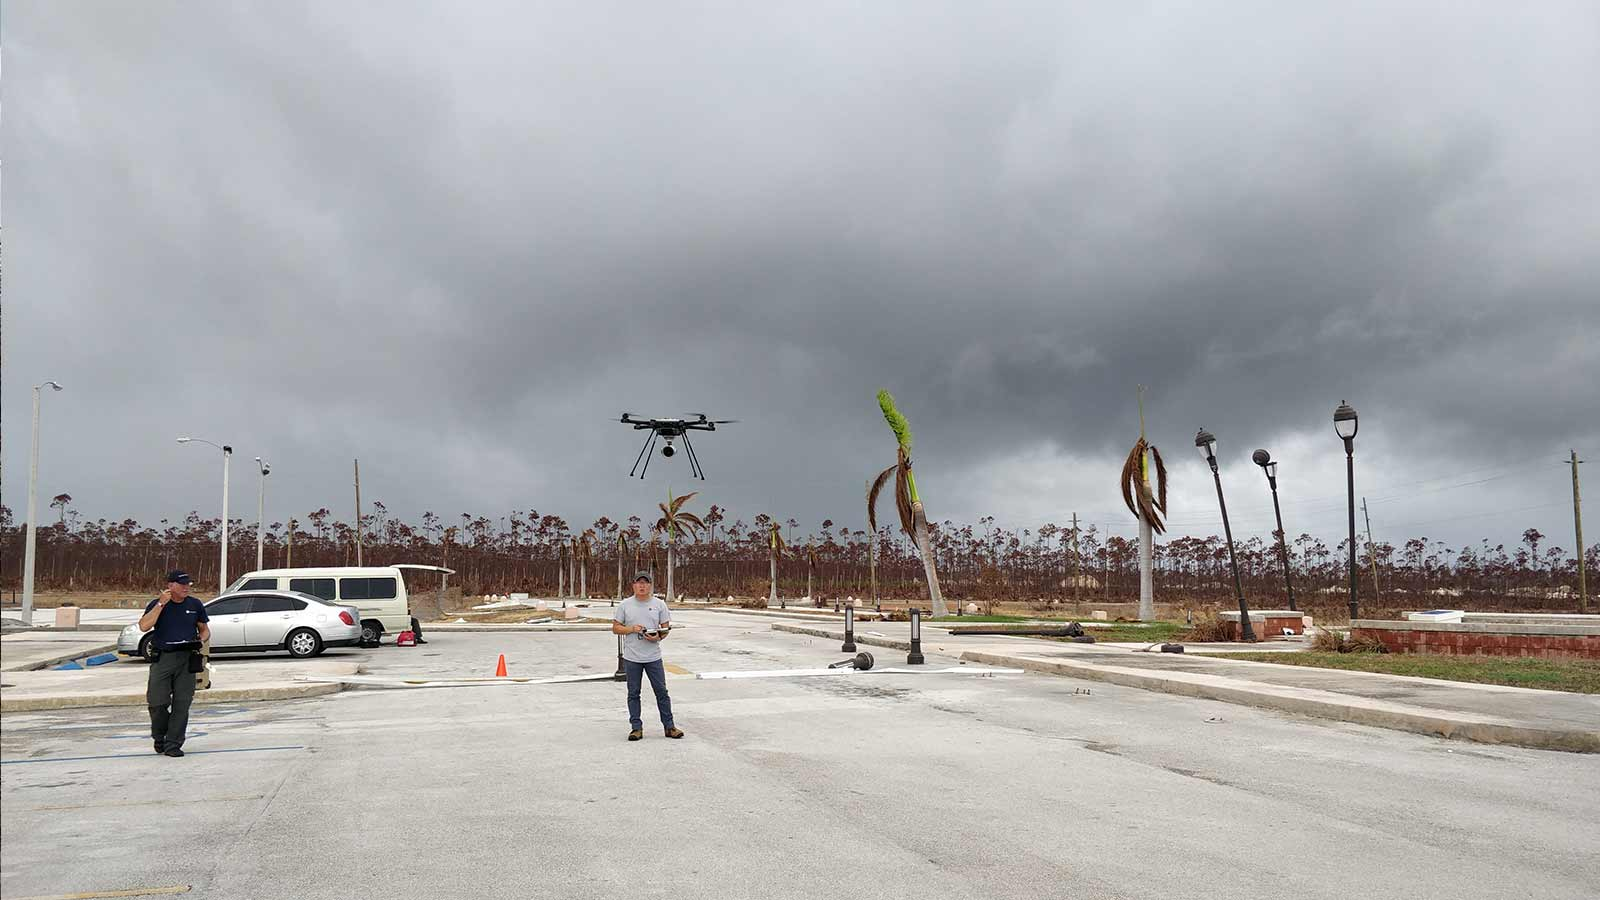 Flying-a-drone-to-review-damage-after-a-hurricane